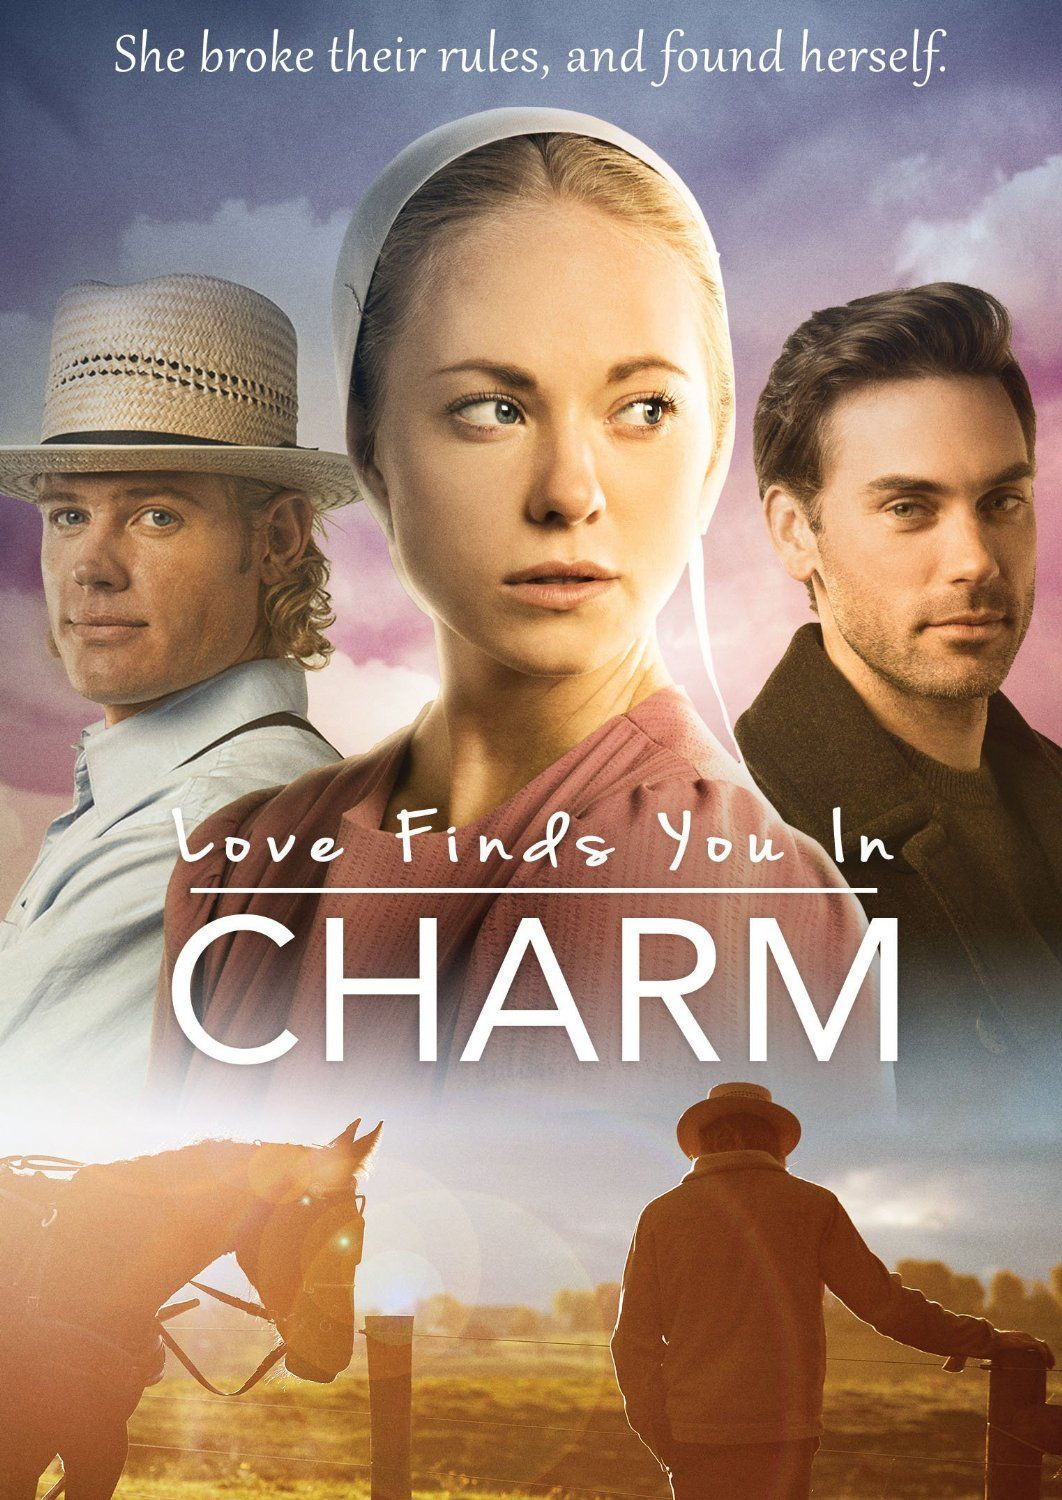 love finds you in charm movie watch online